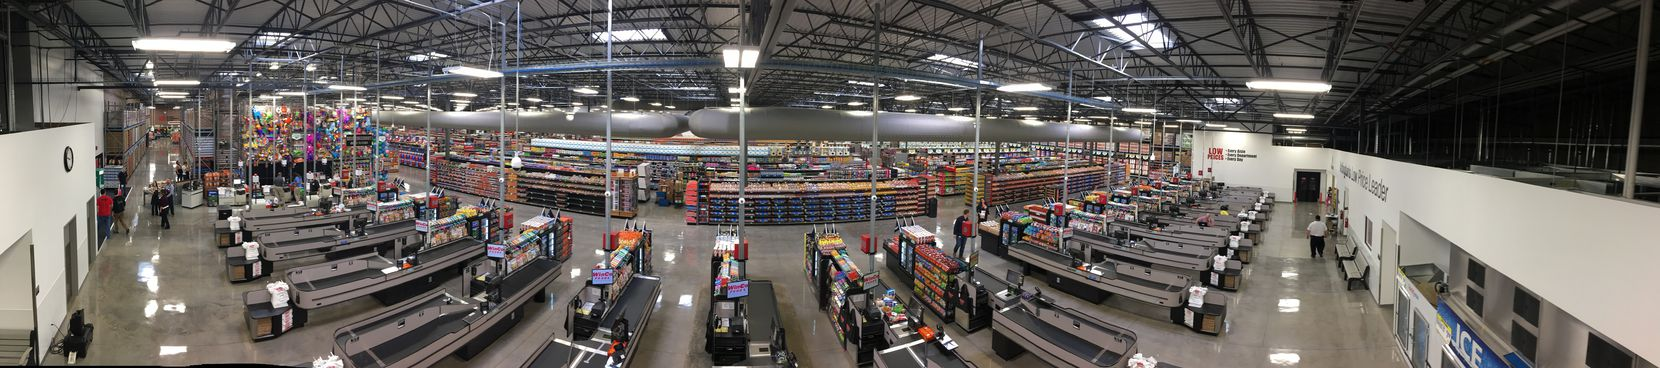 WinCo opened a store in at 4620 S. Cooper St. in Arlington in 2016 in a building that had housed a Sports Authority.